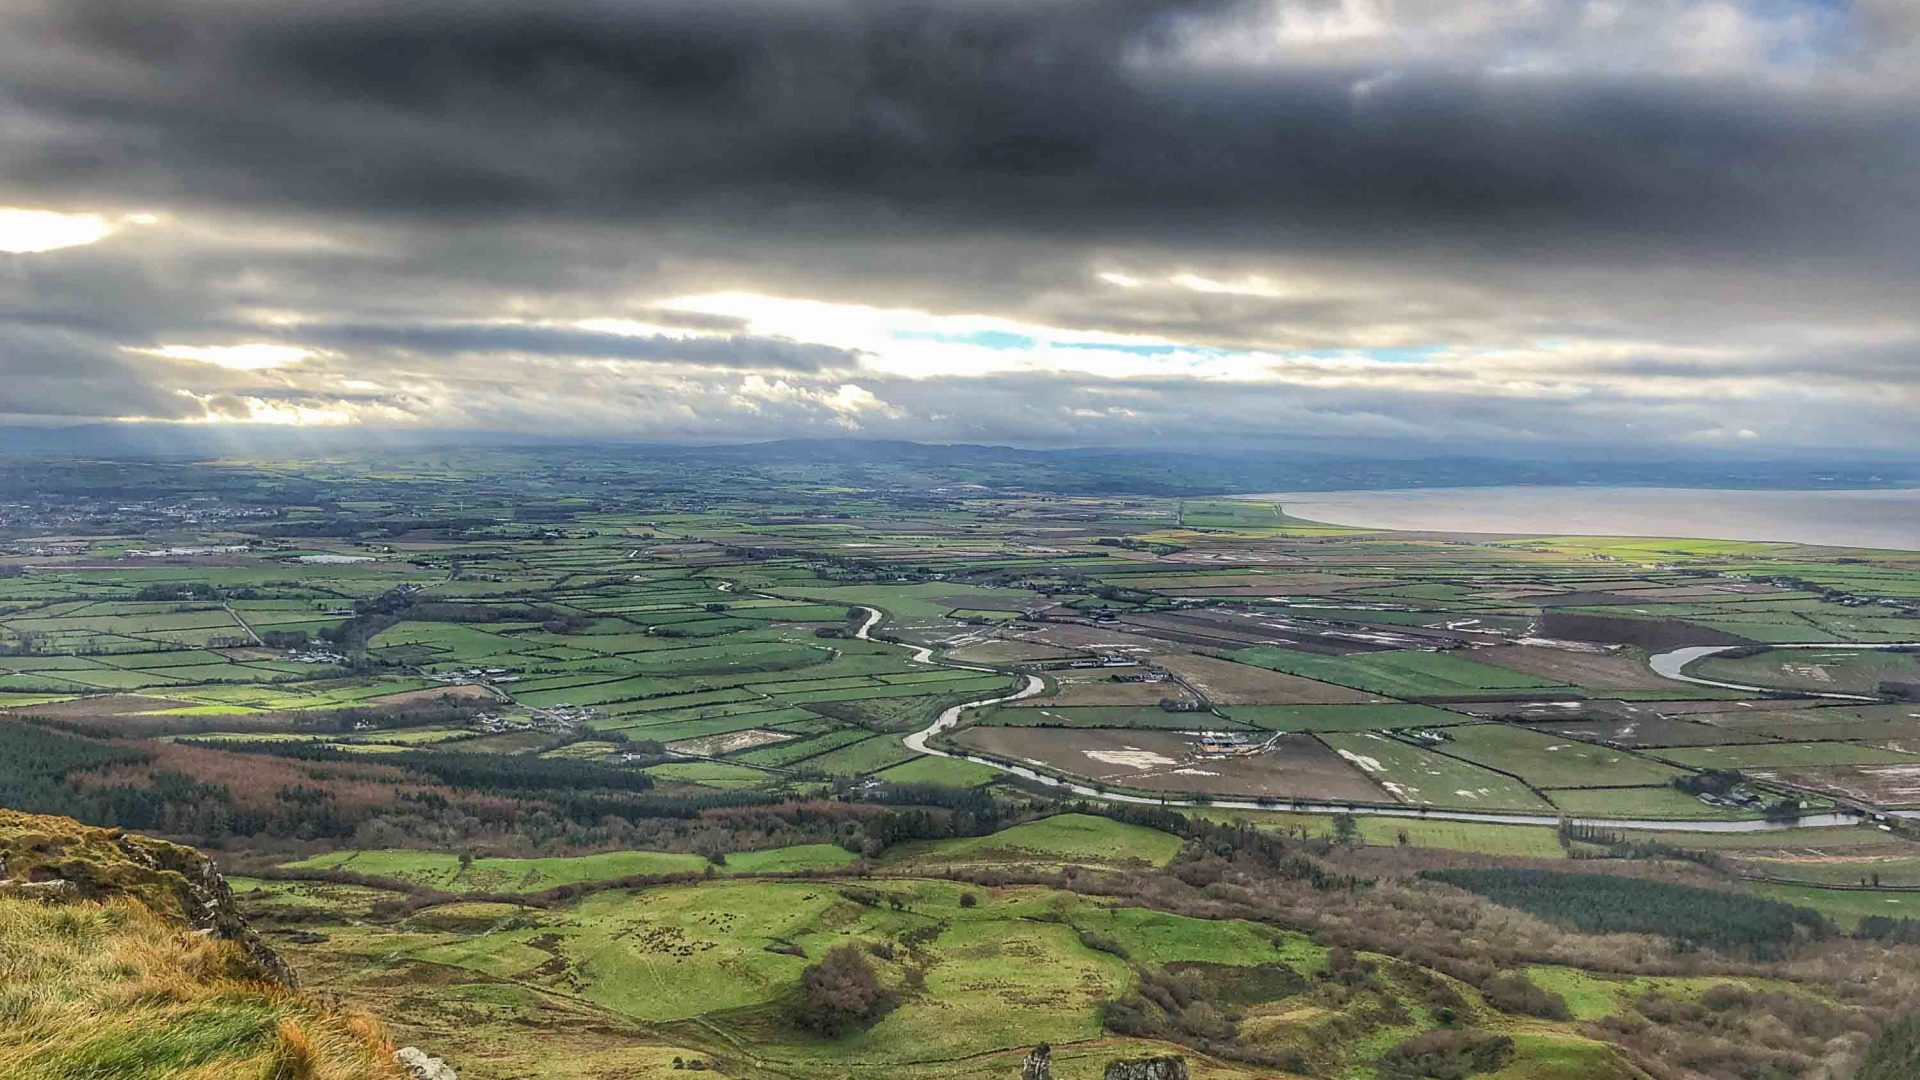 Views across to Magilligan and Limavady with Lough Foyle in the distance from the top of Binevenagh mountain.